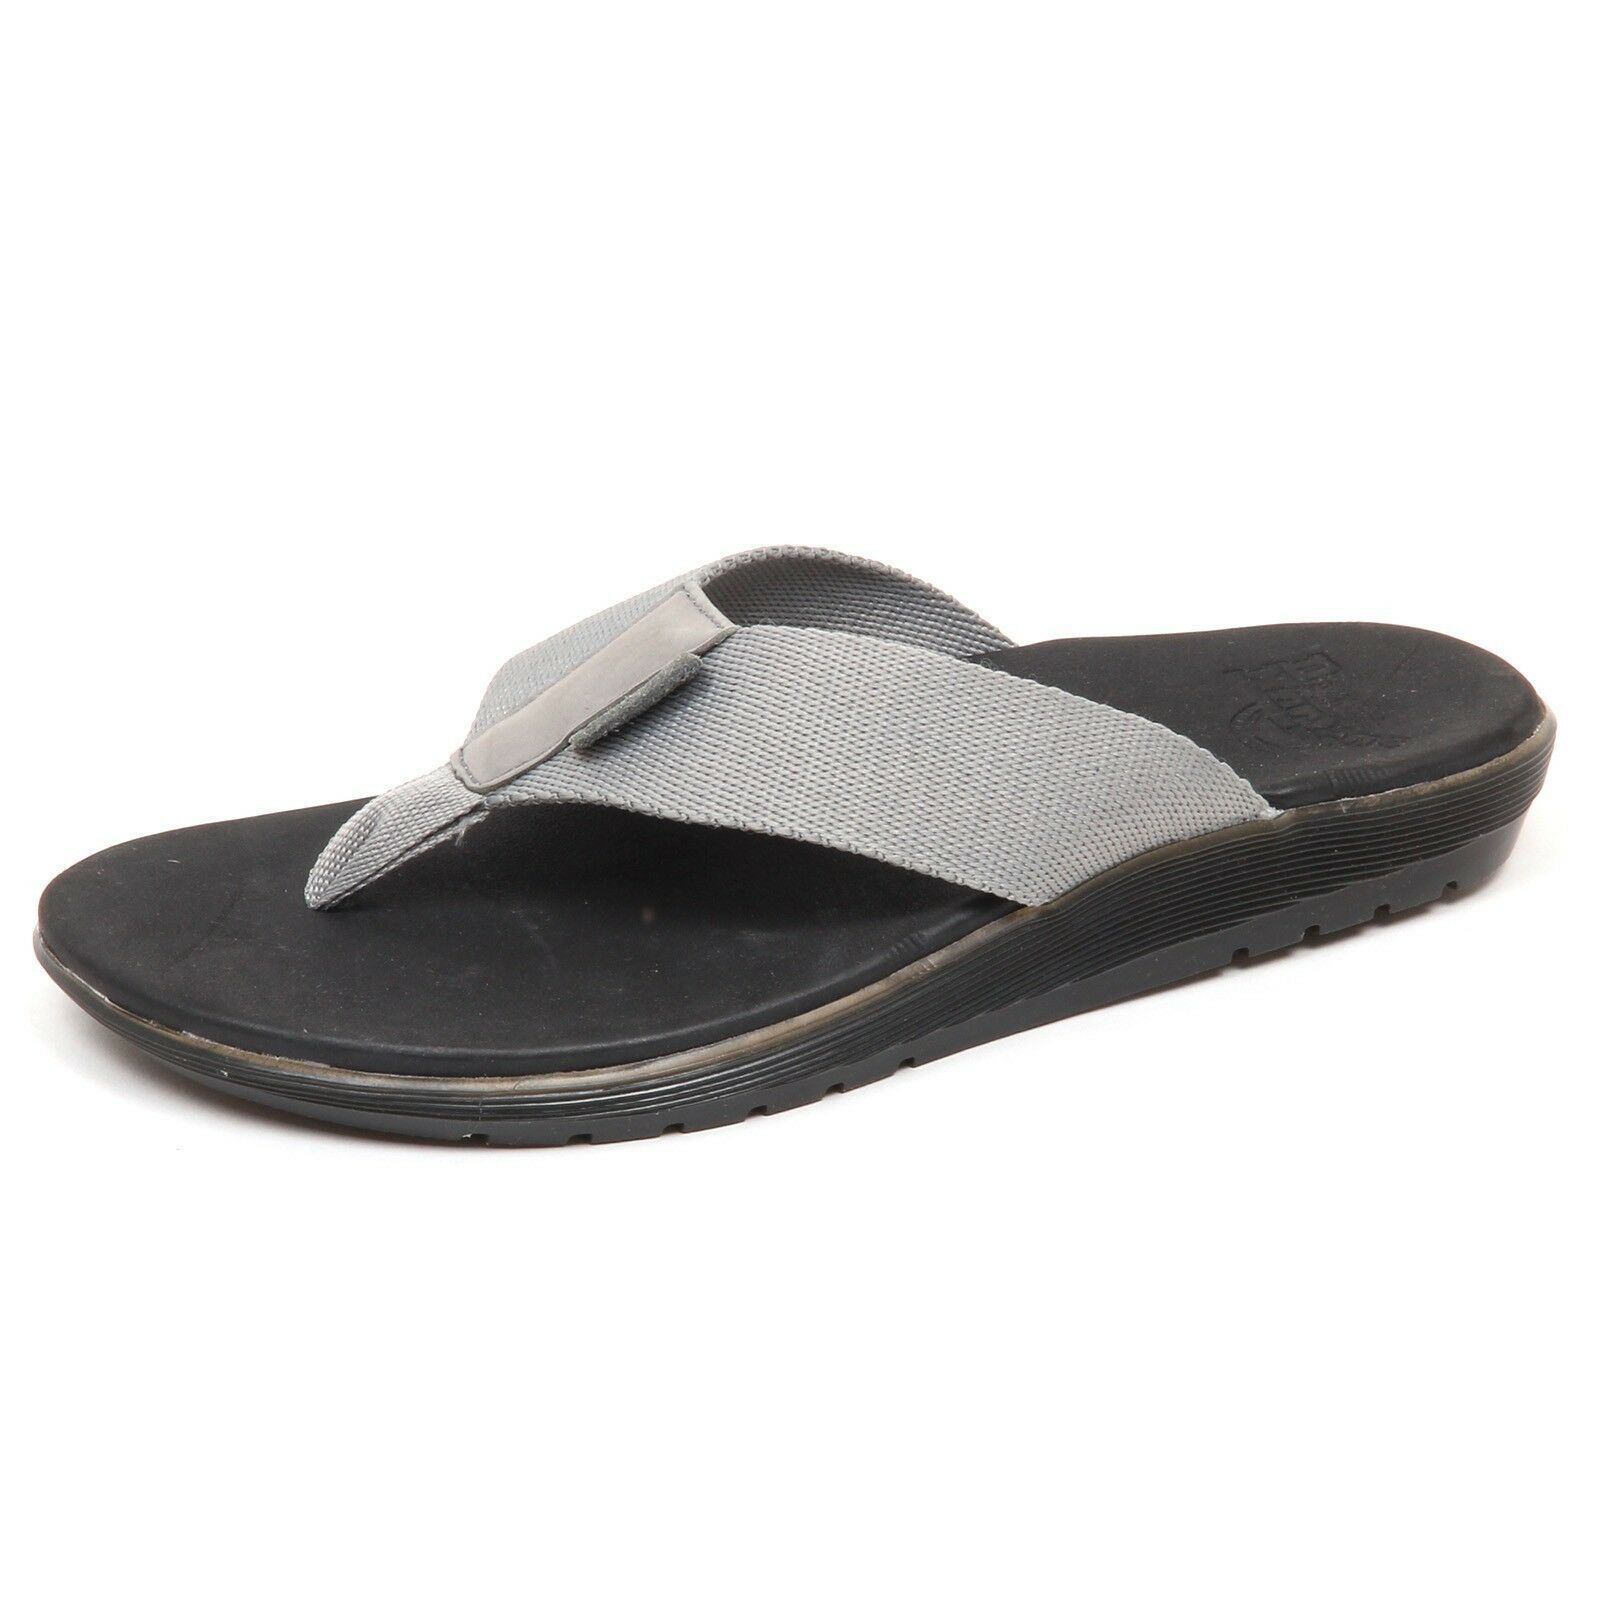 D9802 (without box) infradito uomo DR. MARTENS MANA grey flip flop shoe man